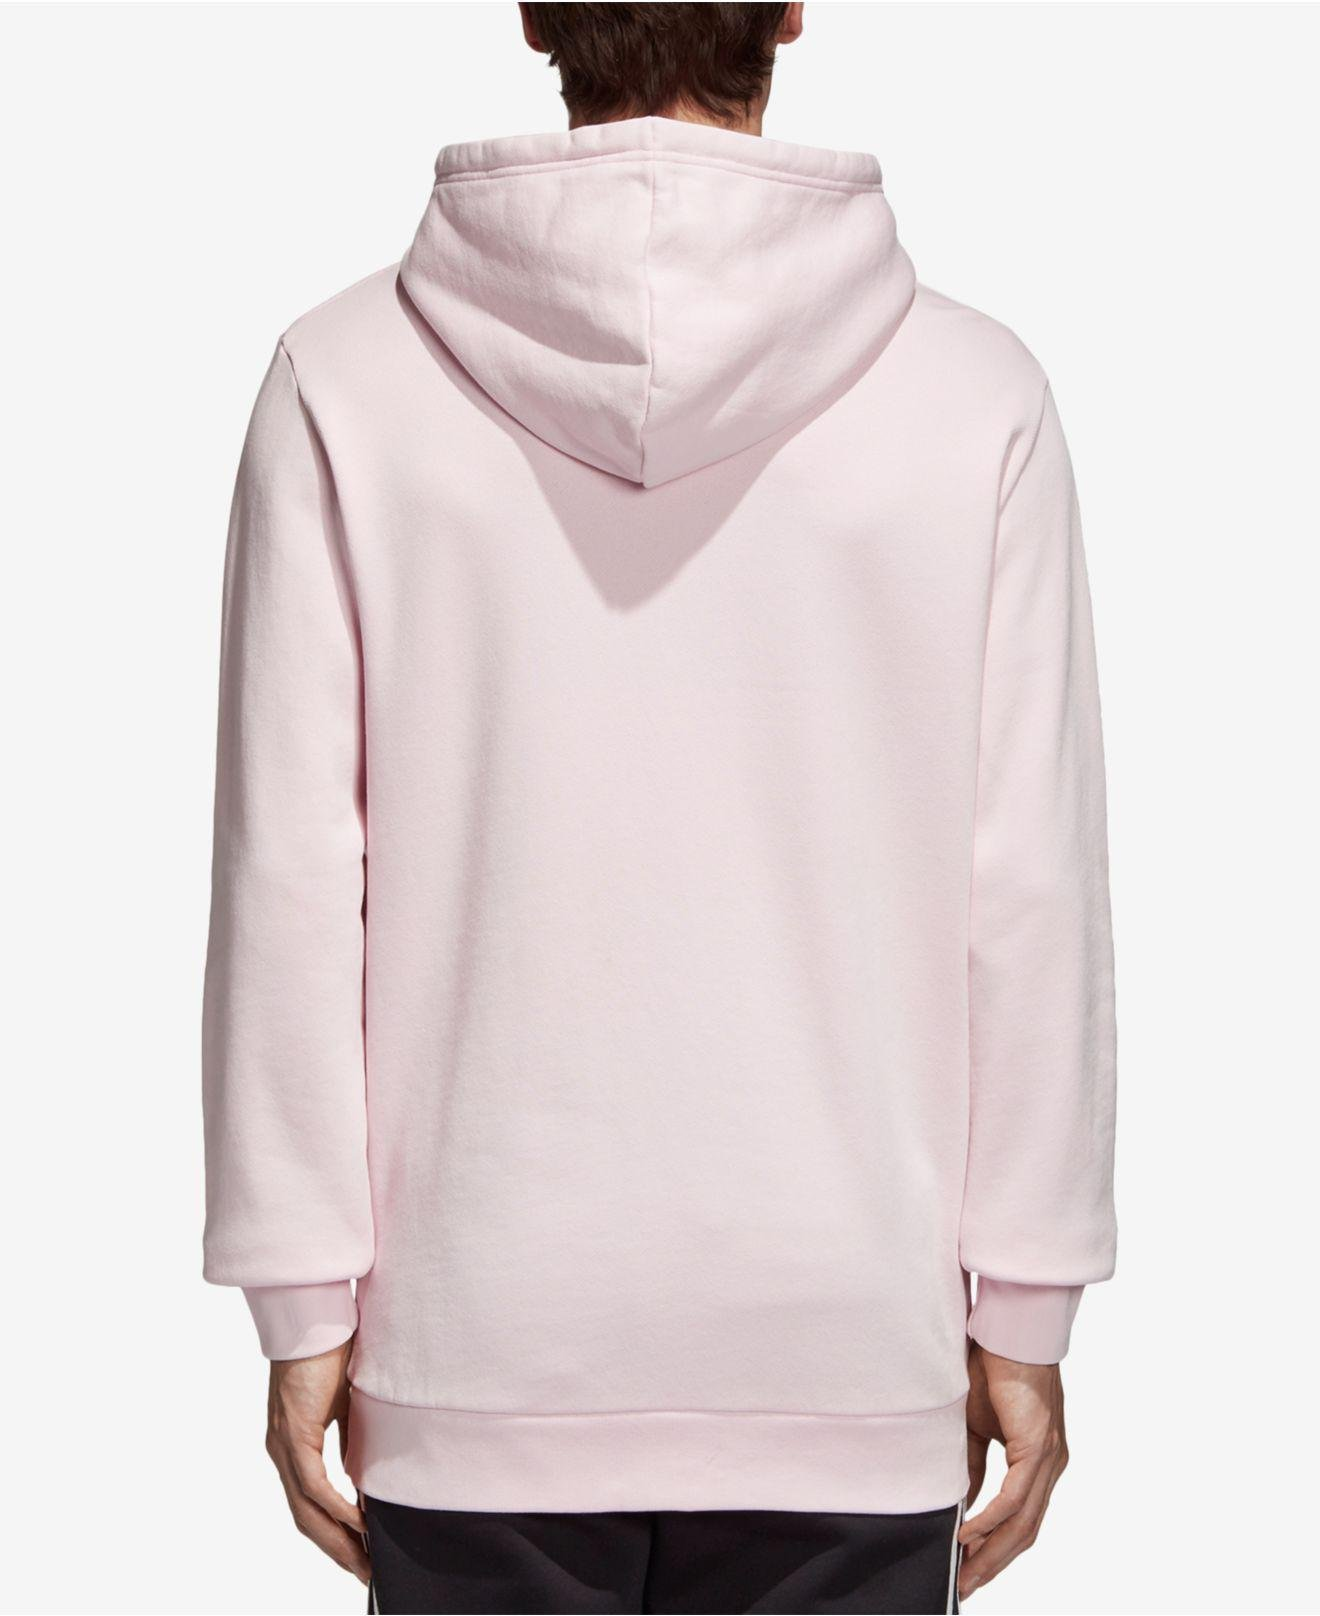 6d2bb39d9858 Lyst - Adidas Originals Trefoil Hoodie in Pink for Men